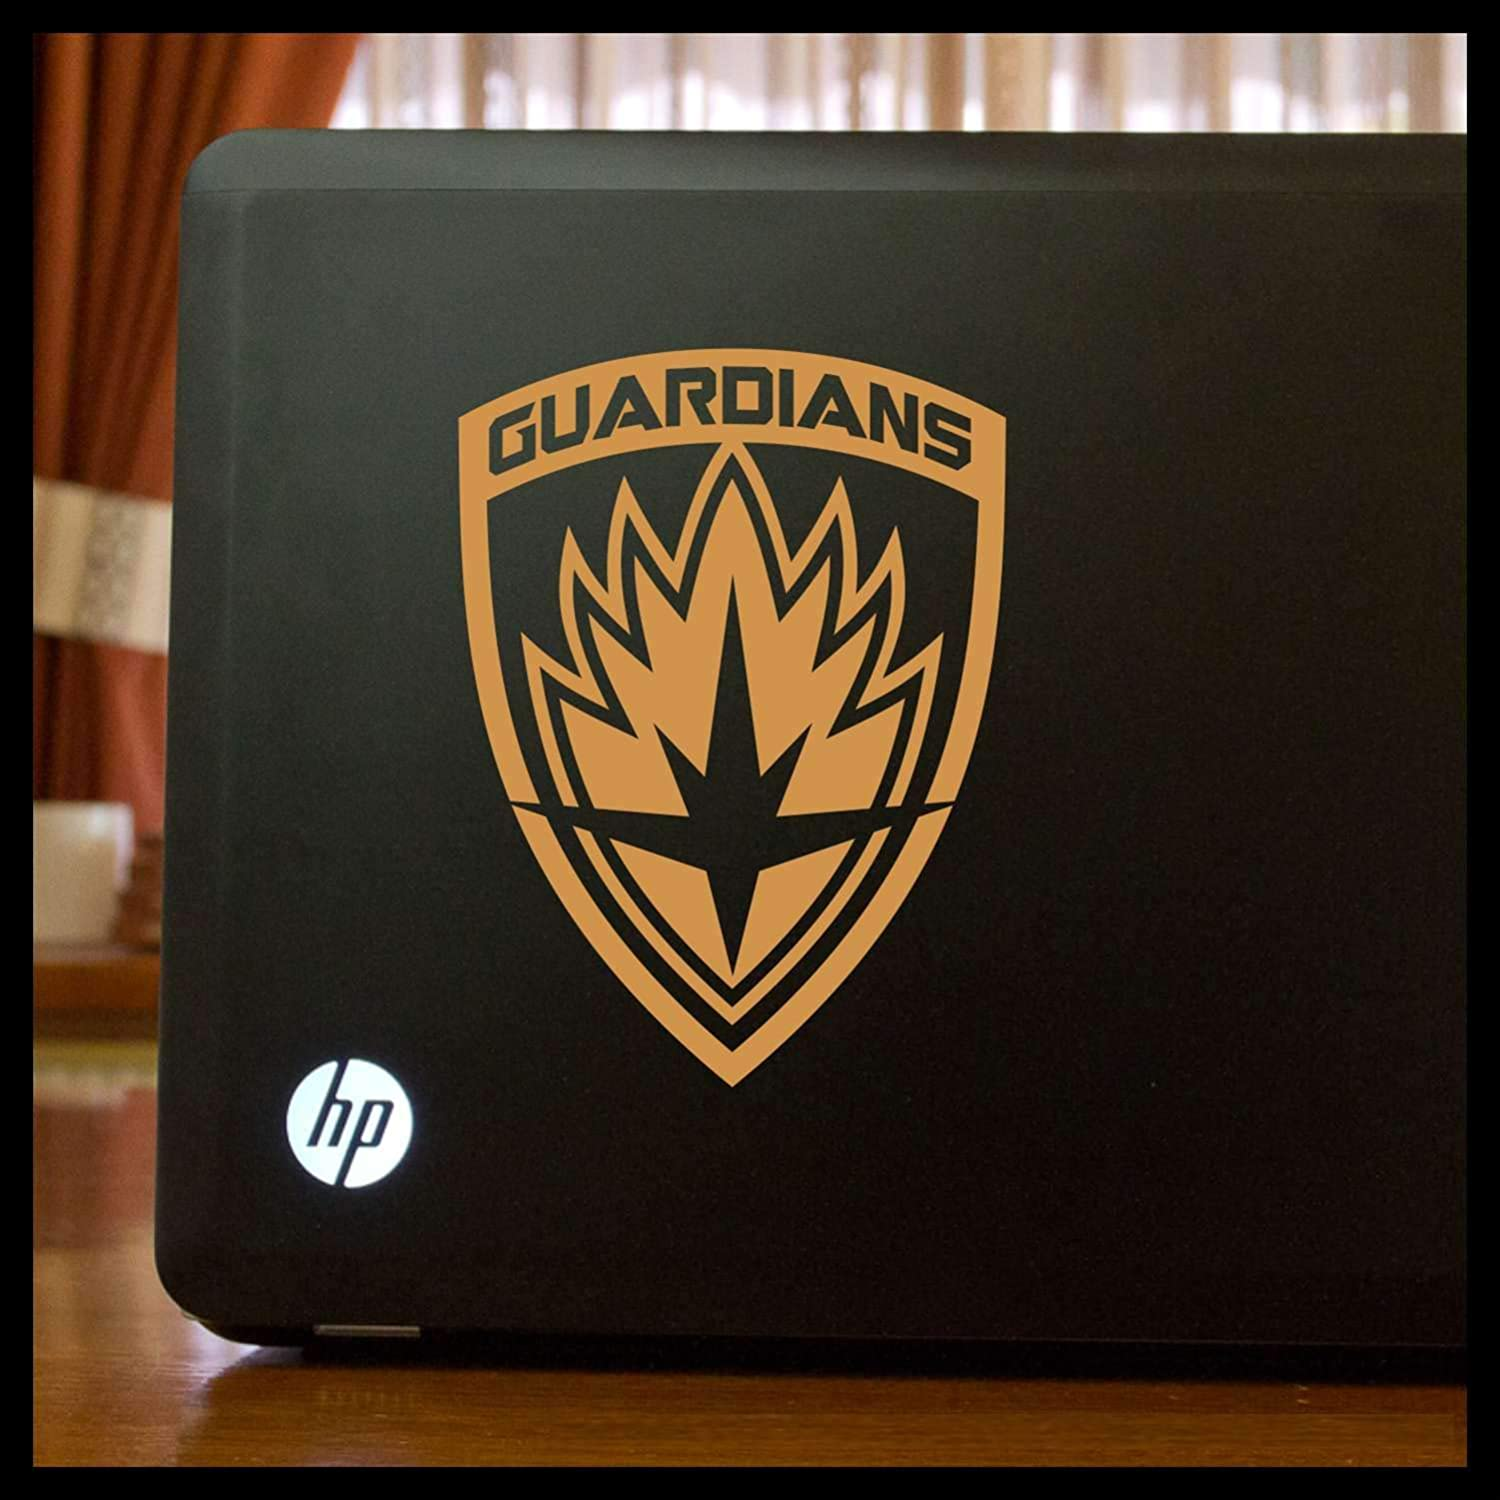 Guardians of the Galaxy emblem SMALL Vinyl Car/Laptop Decal